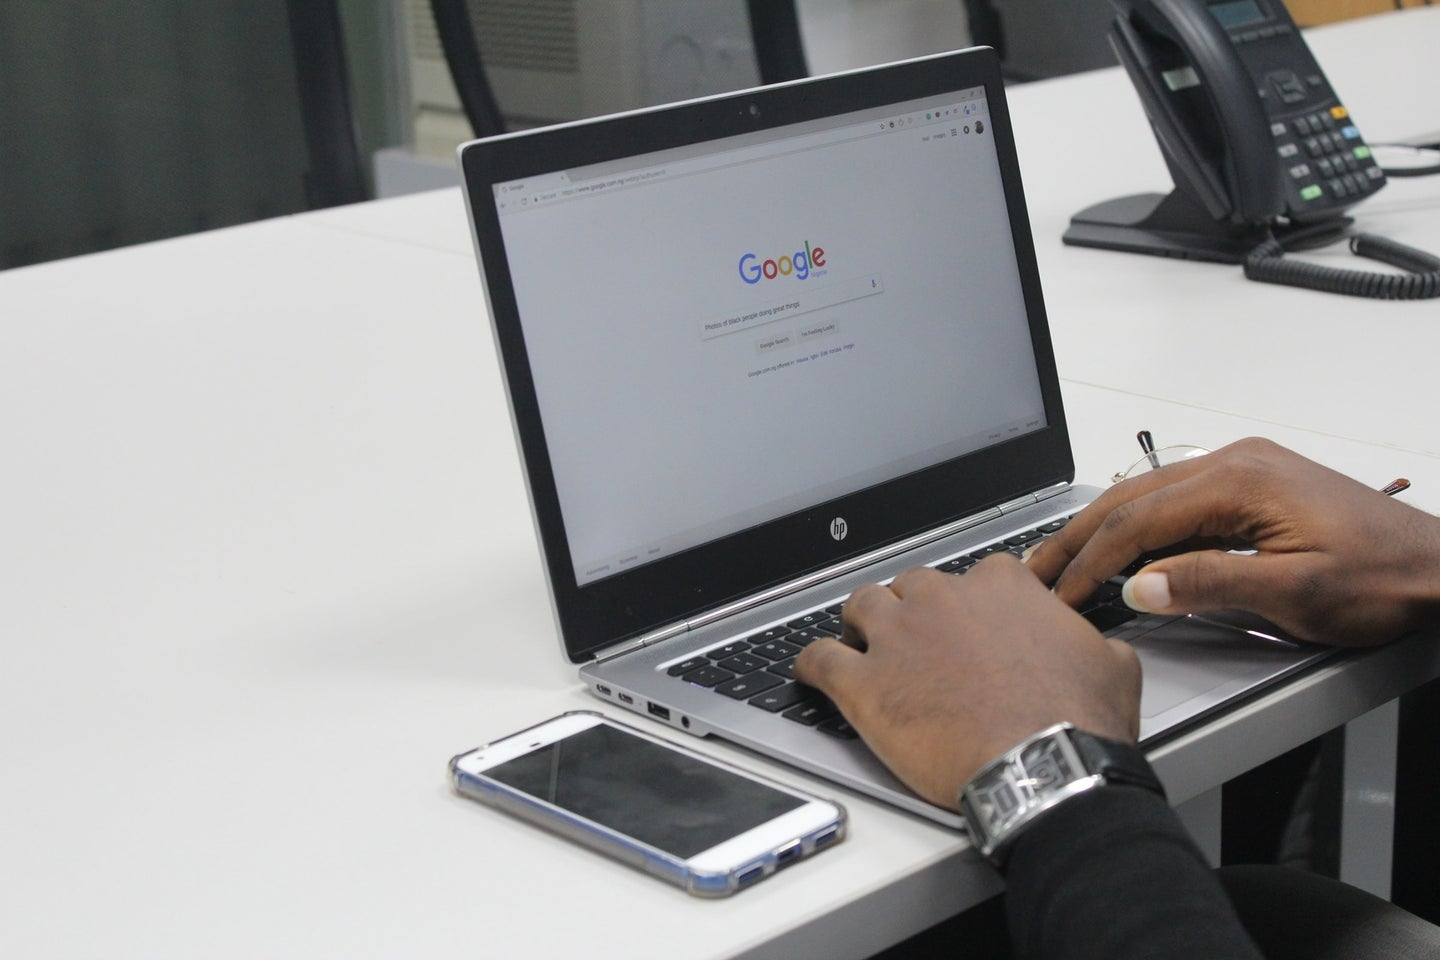 a person using the Google search engine on a laptop